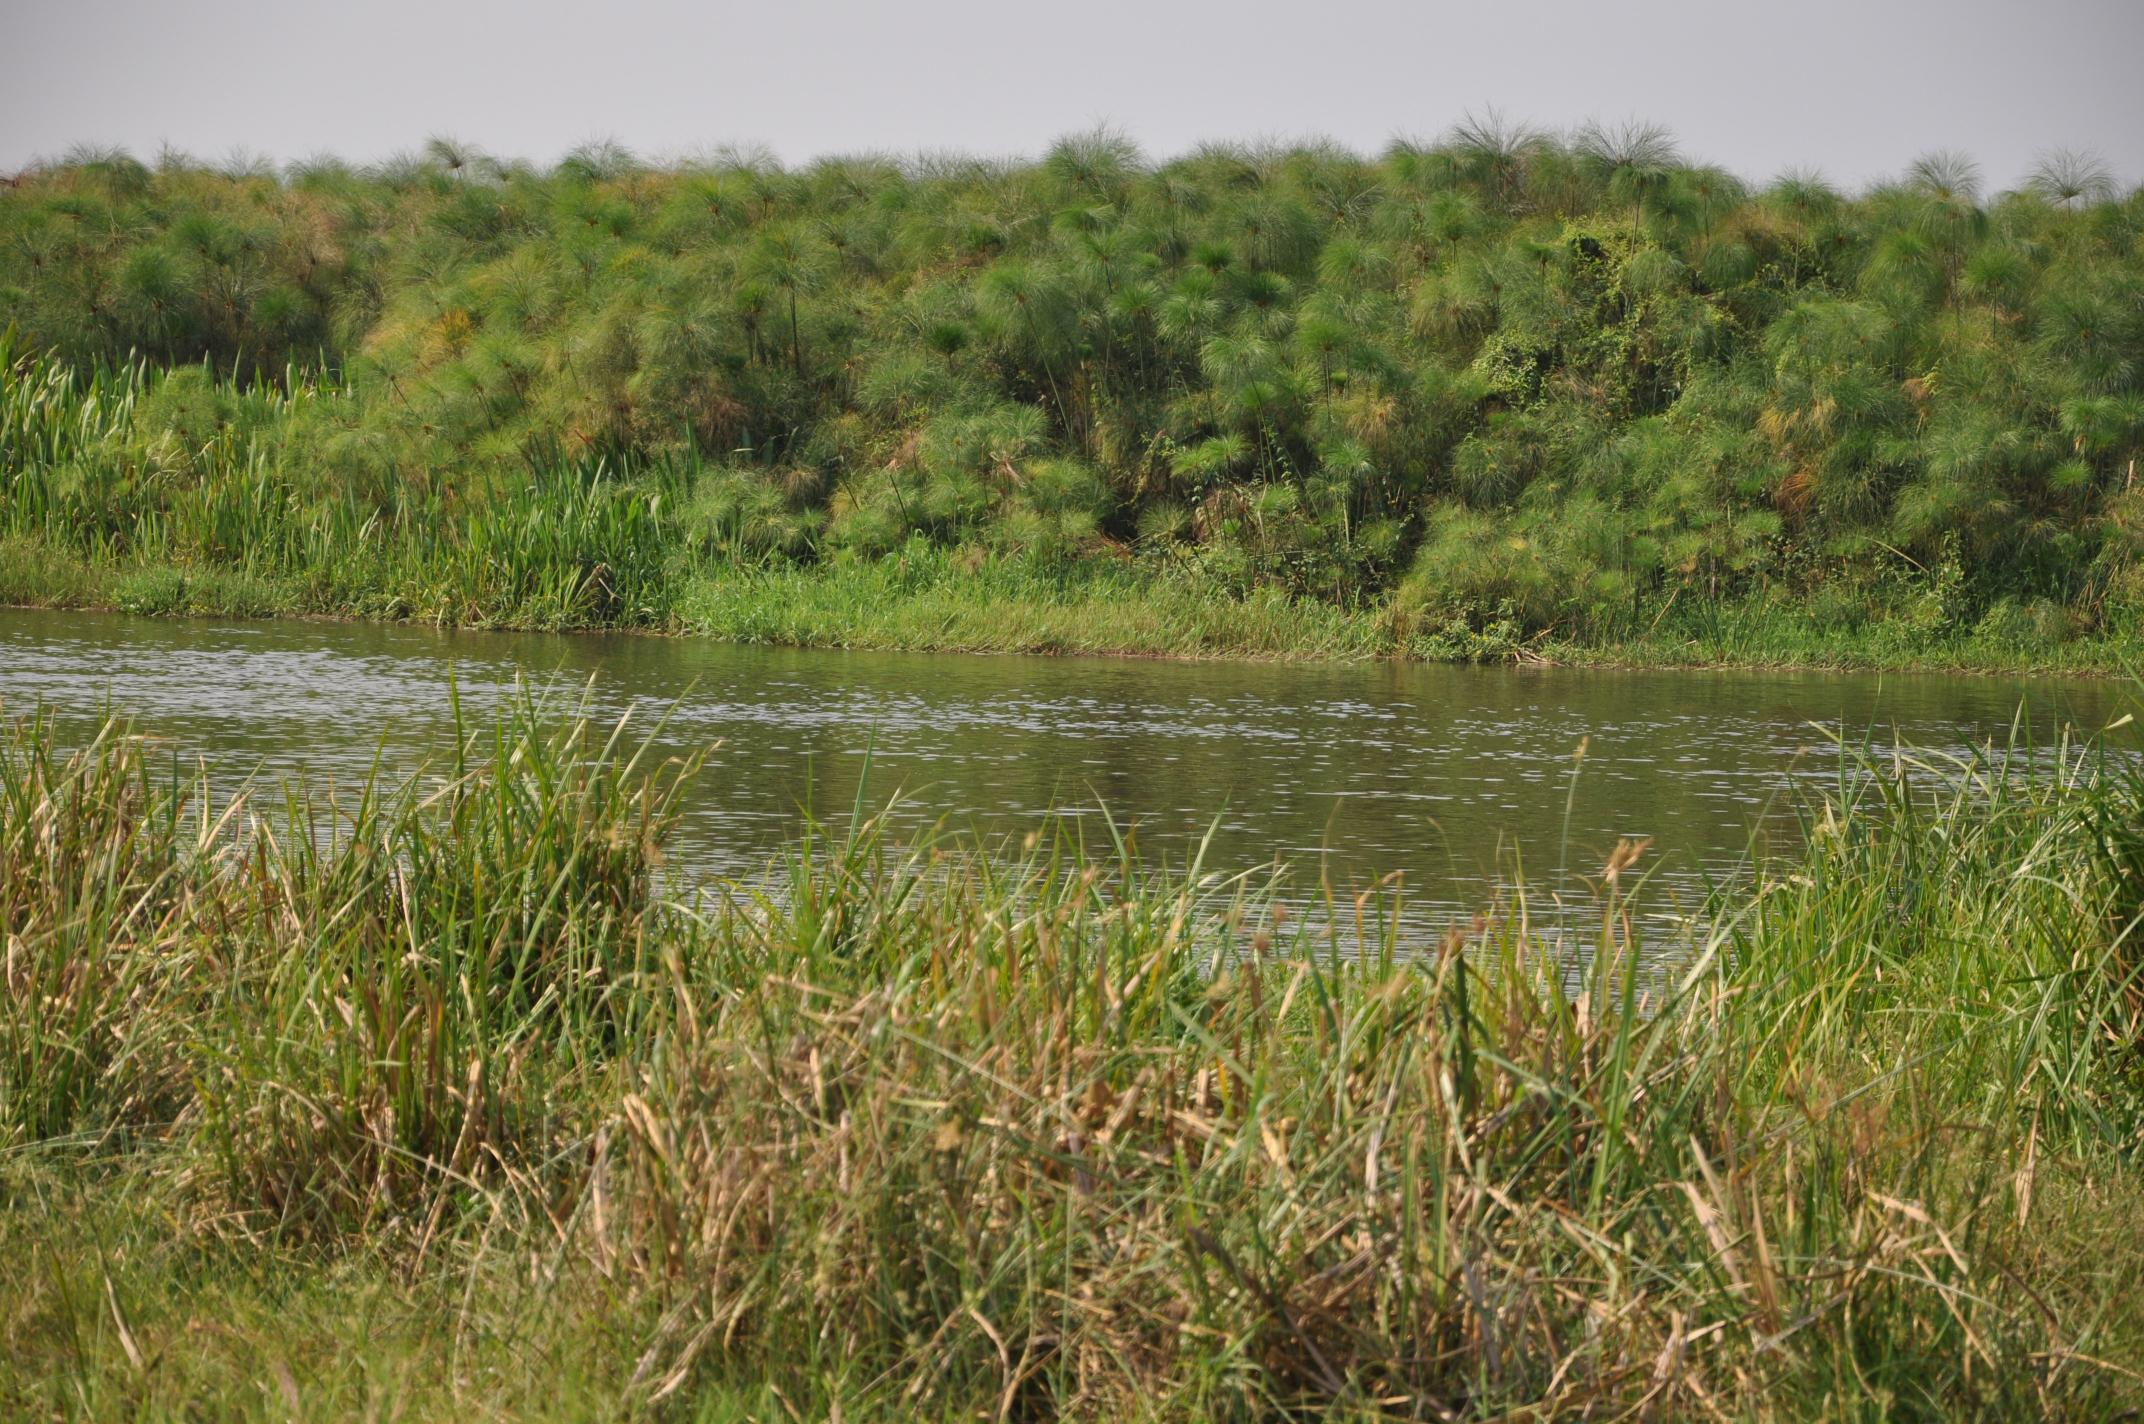 1. Typical habitat, Nile delta at Lake Albert